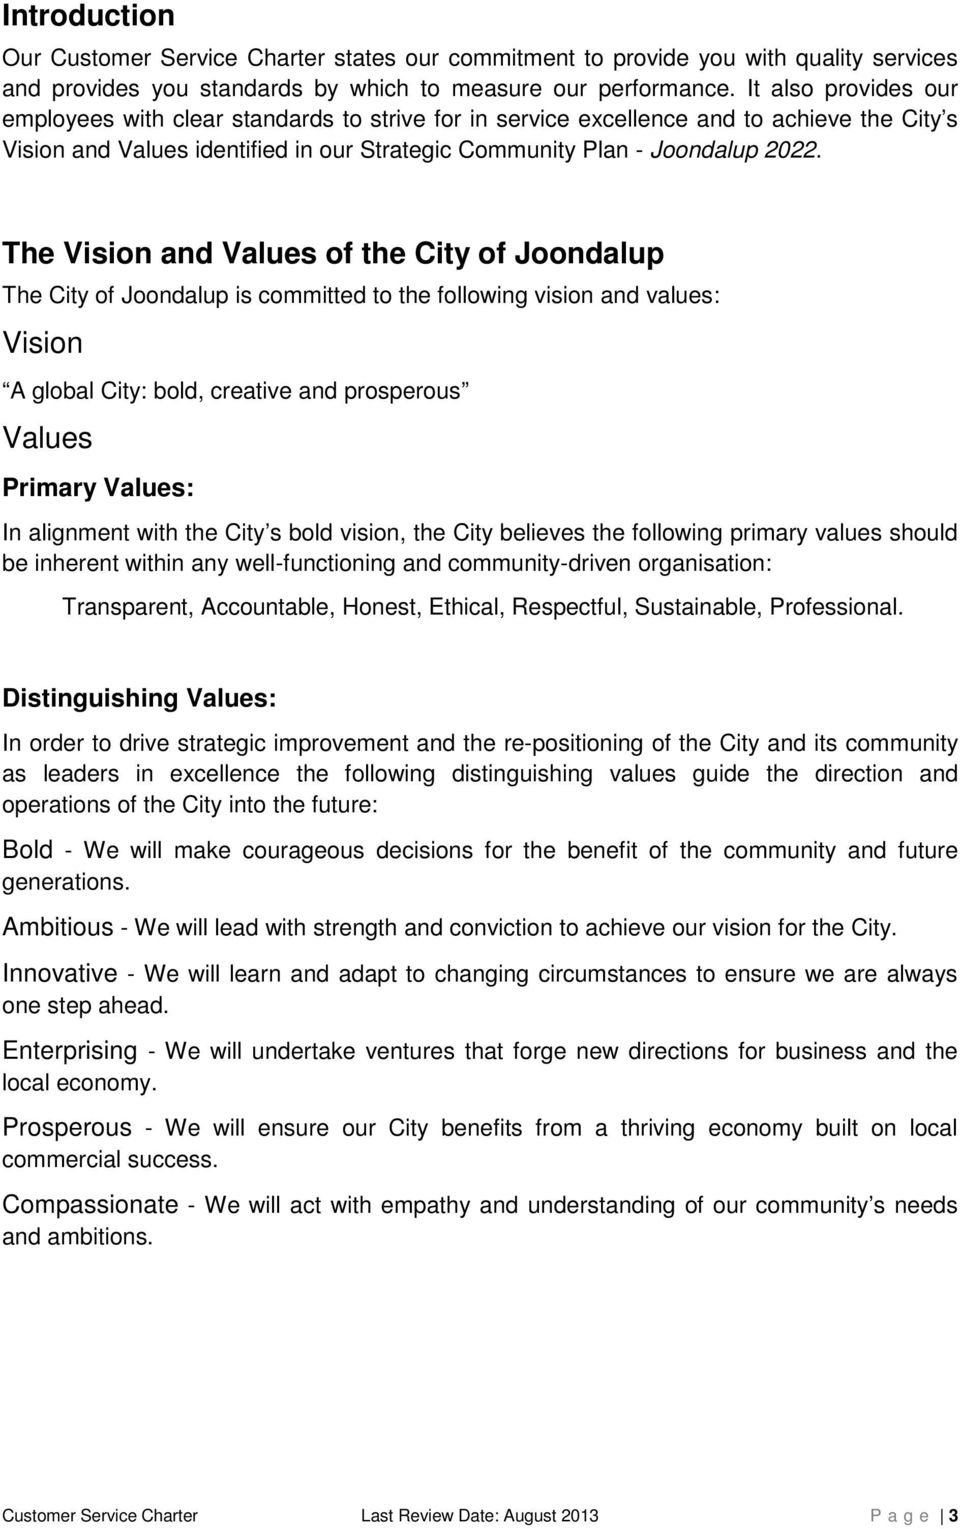 The Vision and Values of the City of Joondalup The City of Joondalup is committed to the following vision and values: Vision A global City: bold, creative and prosperous Values Primary Values: In